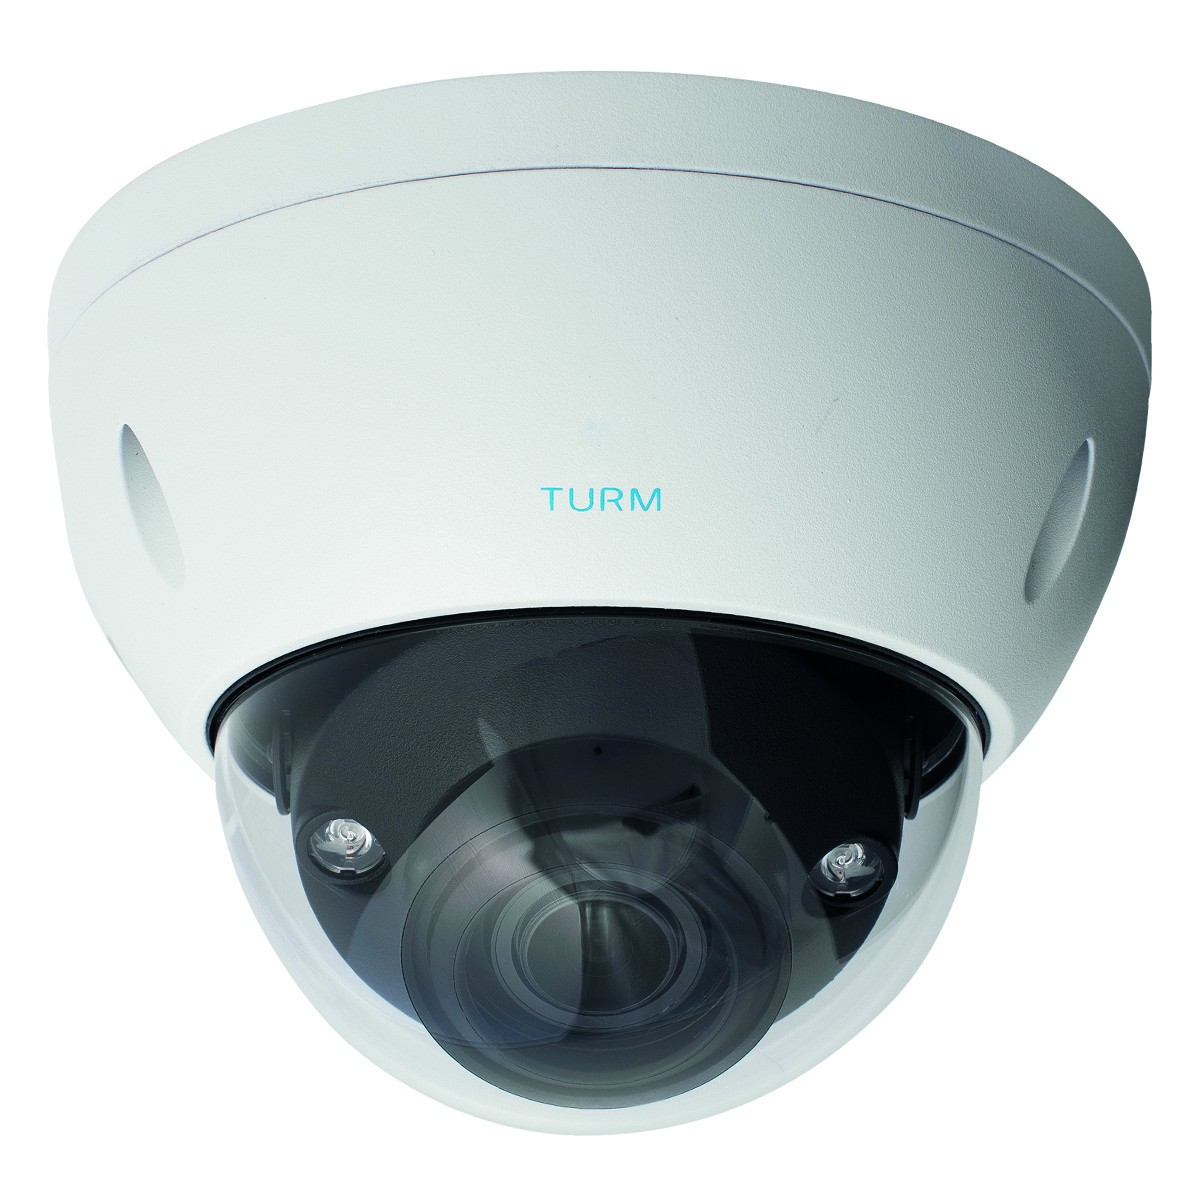 TURM IP Ultra 8 MP 4K Dome Kamera mit intelligenter Videoanalyse und Motorzoom